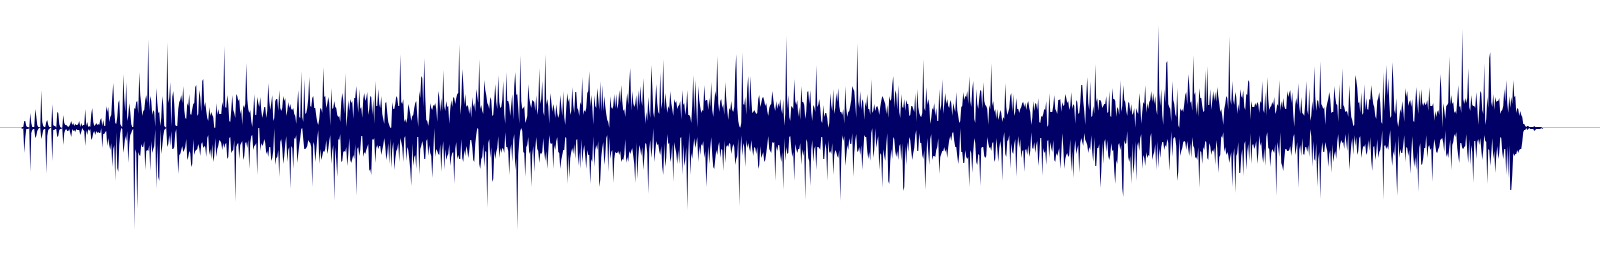 waveform of track #131602